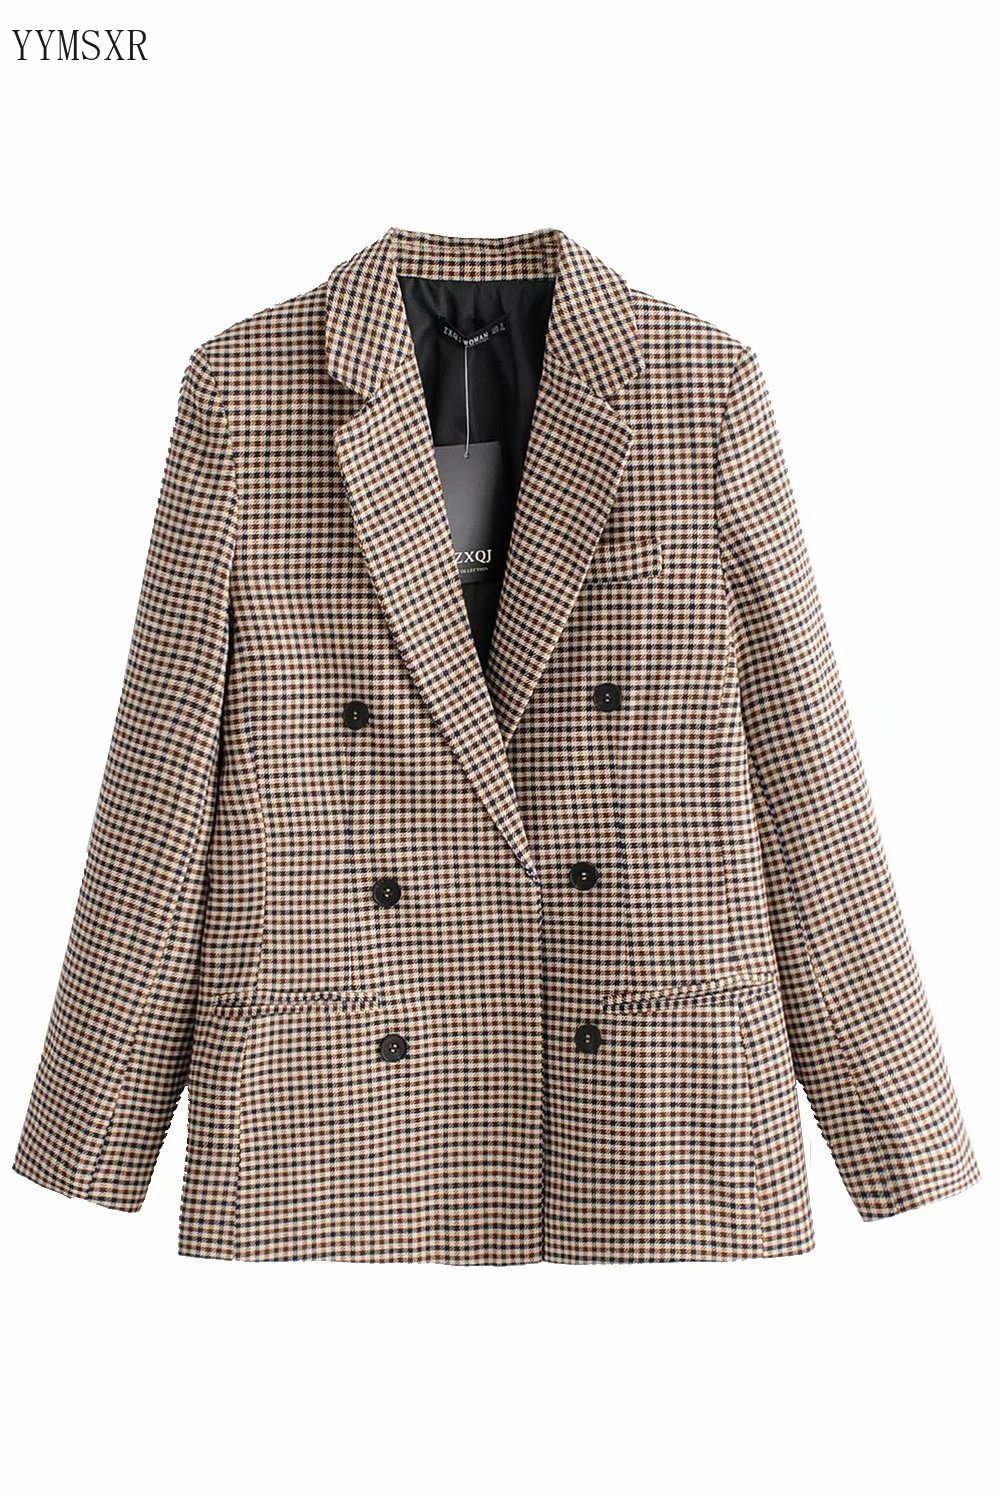 2020 new autumn plaid ladies blazer jacket feminine Casual slim ladies small suit Female Mid-length jacket and coat